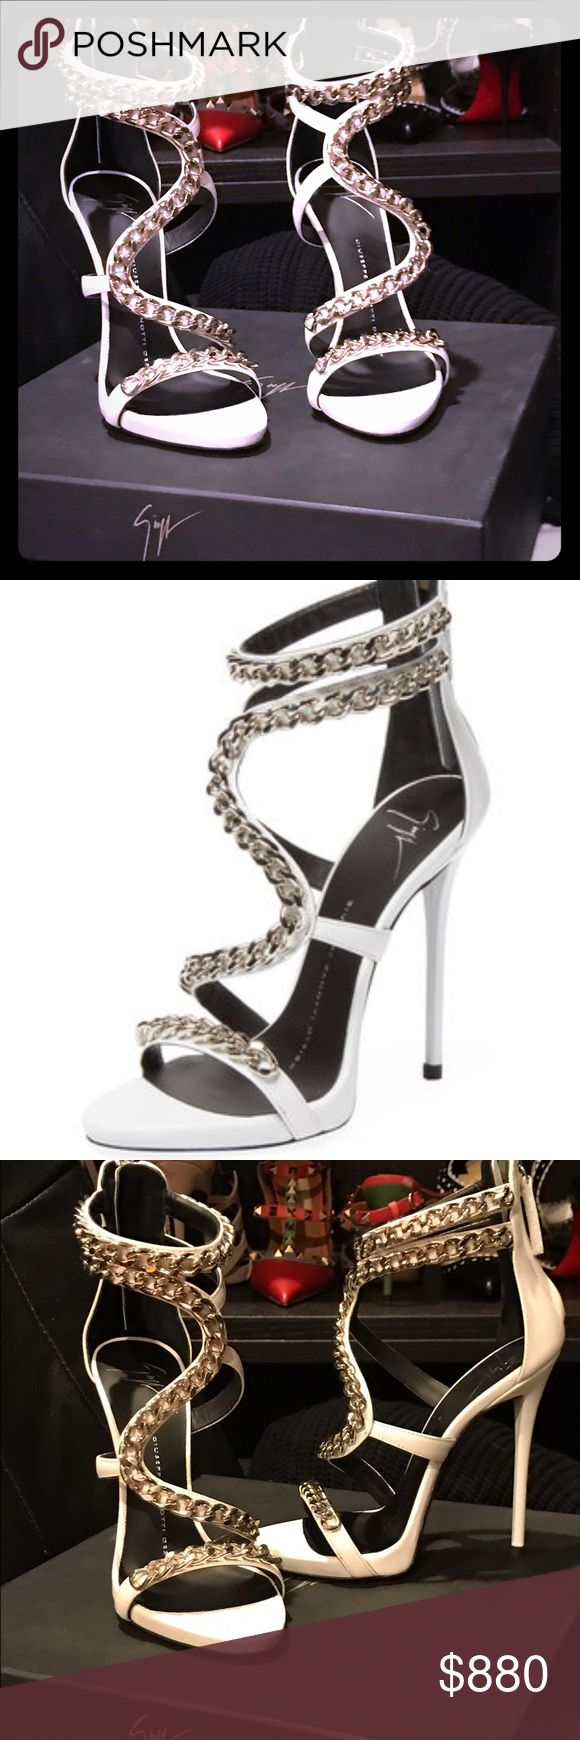 """⚡️FLASH SALE⚡️Giuseppe zanotti leatherchain $1595 ⚡️FLASH SALE ⚡️100% authentic guaranteed. Height 4.75"""", leather upper, chain-link details, leather insole. Made in Italy. Original price $1595 + tax Giuseppe Zanotti Shoes Heels"""